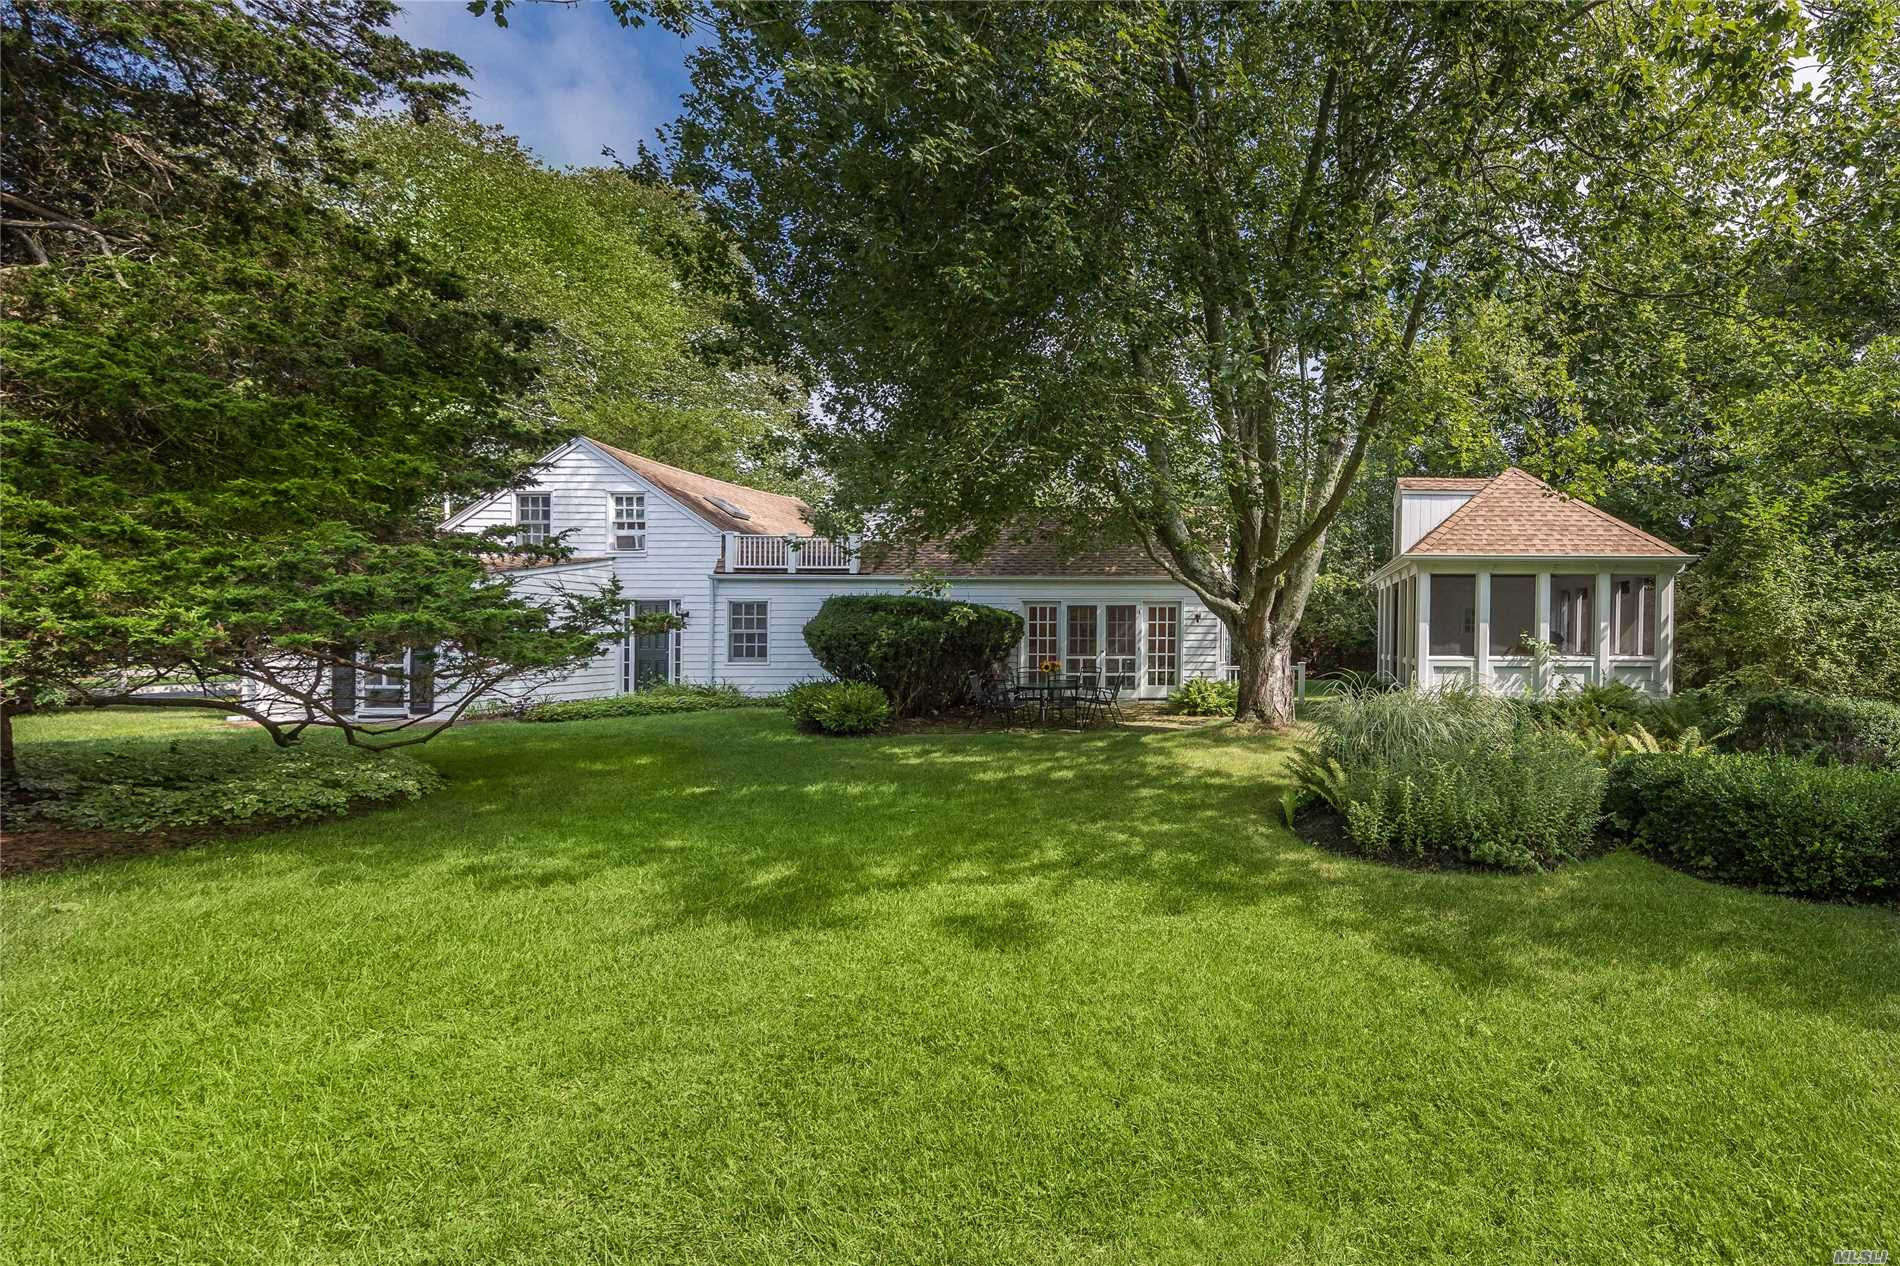 Photo of home for sale at 72 Tanners Neck Ln, Westhampton NY